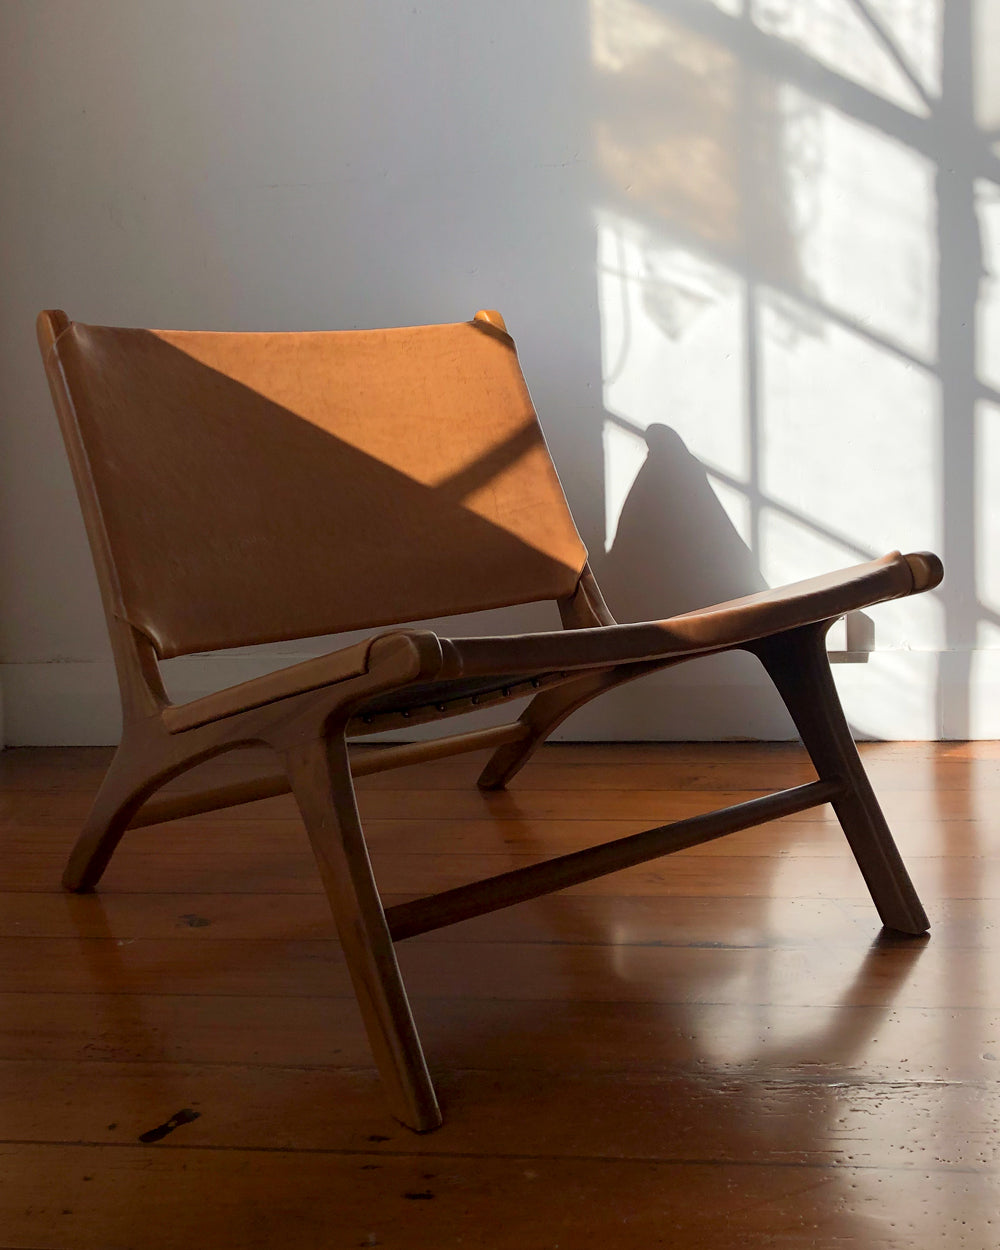 Theody Lounger / McMullin & Co